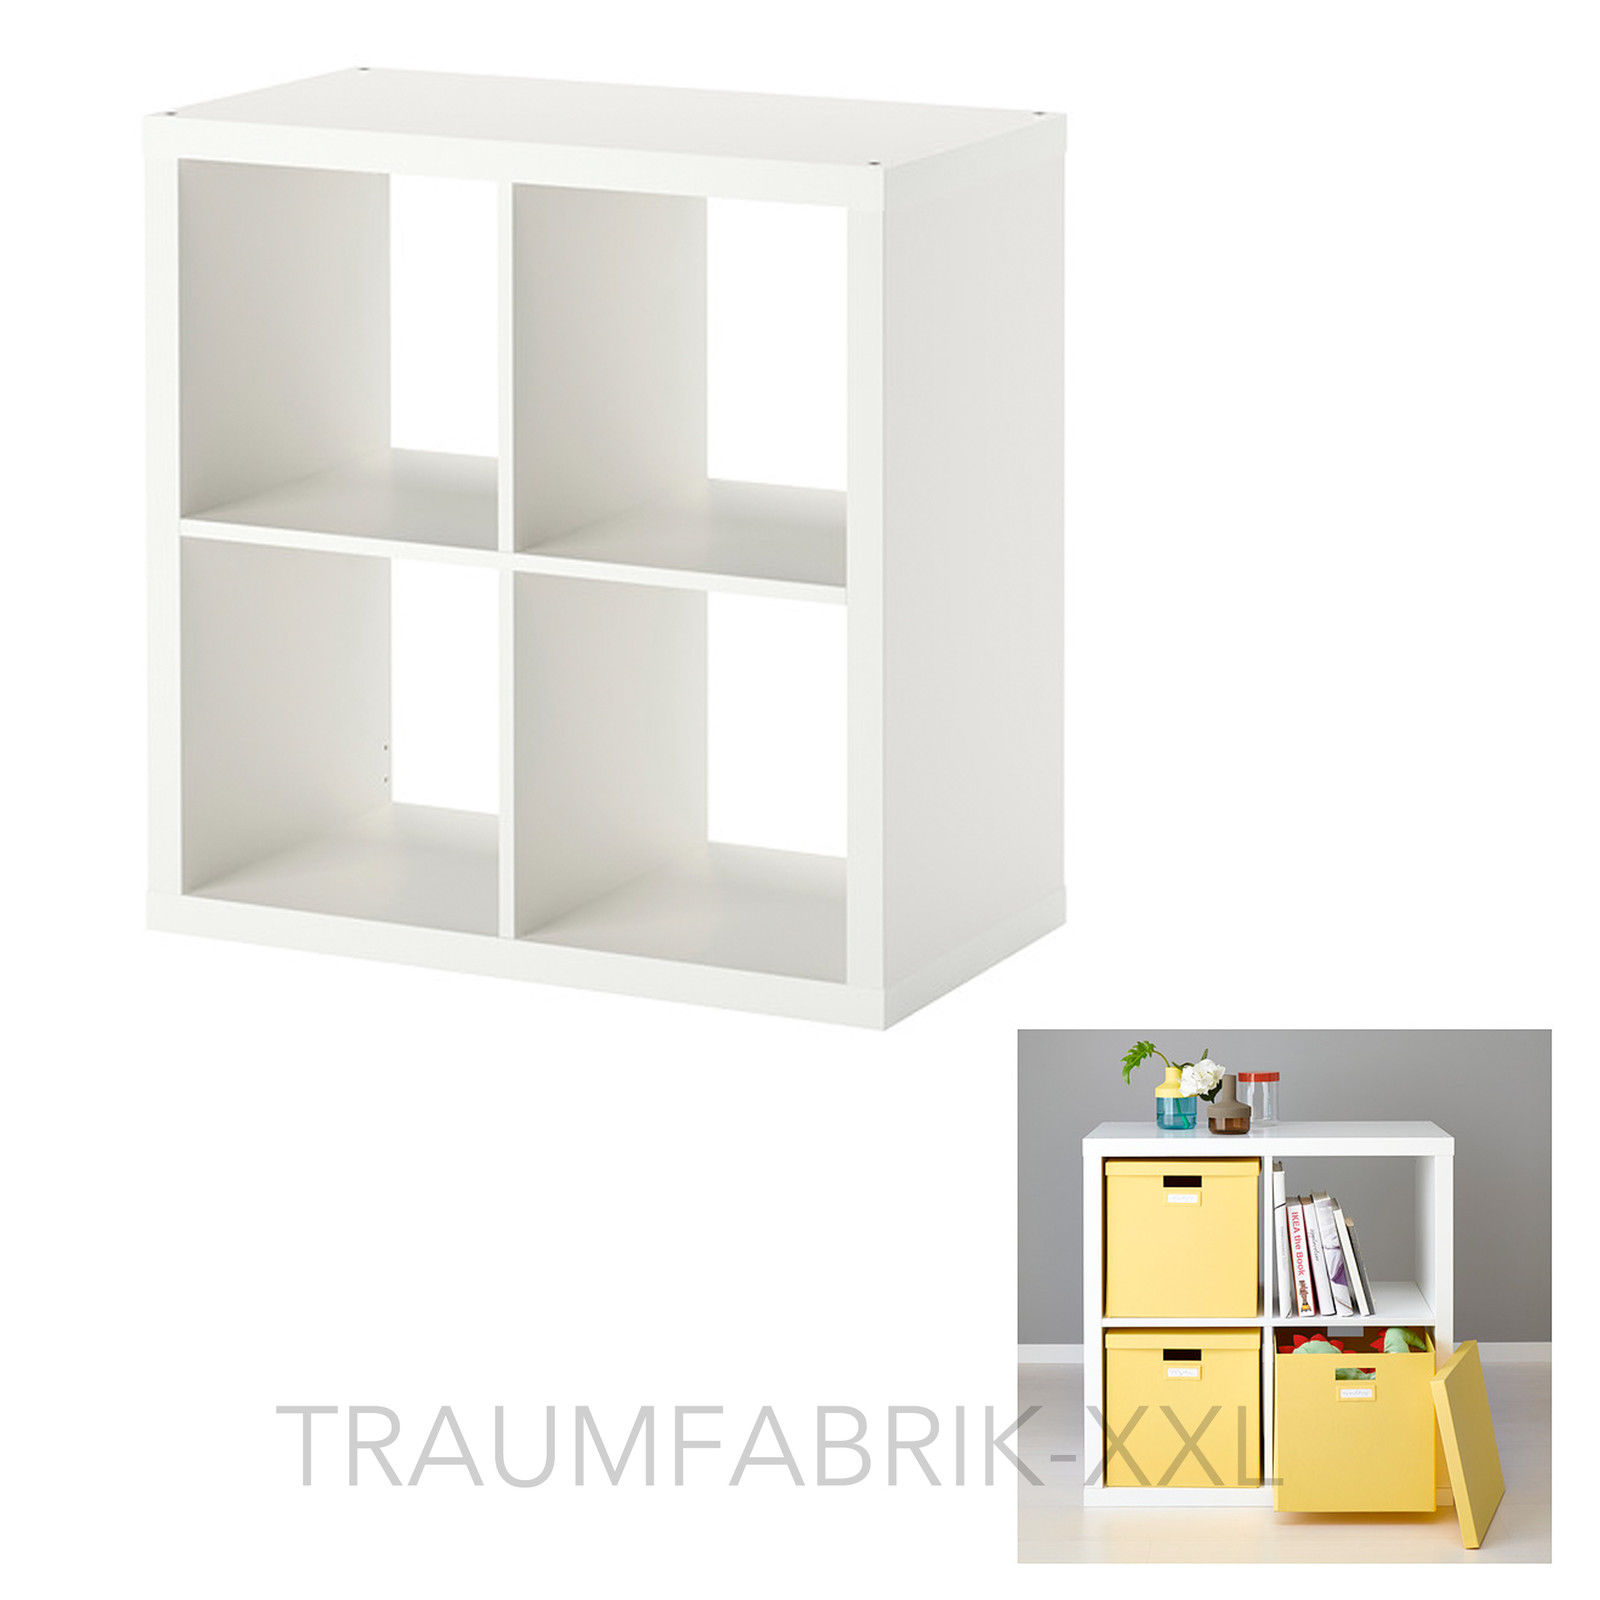 ikea regal regale weiß ( 77 x 77cm ) wandregal bücherregal